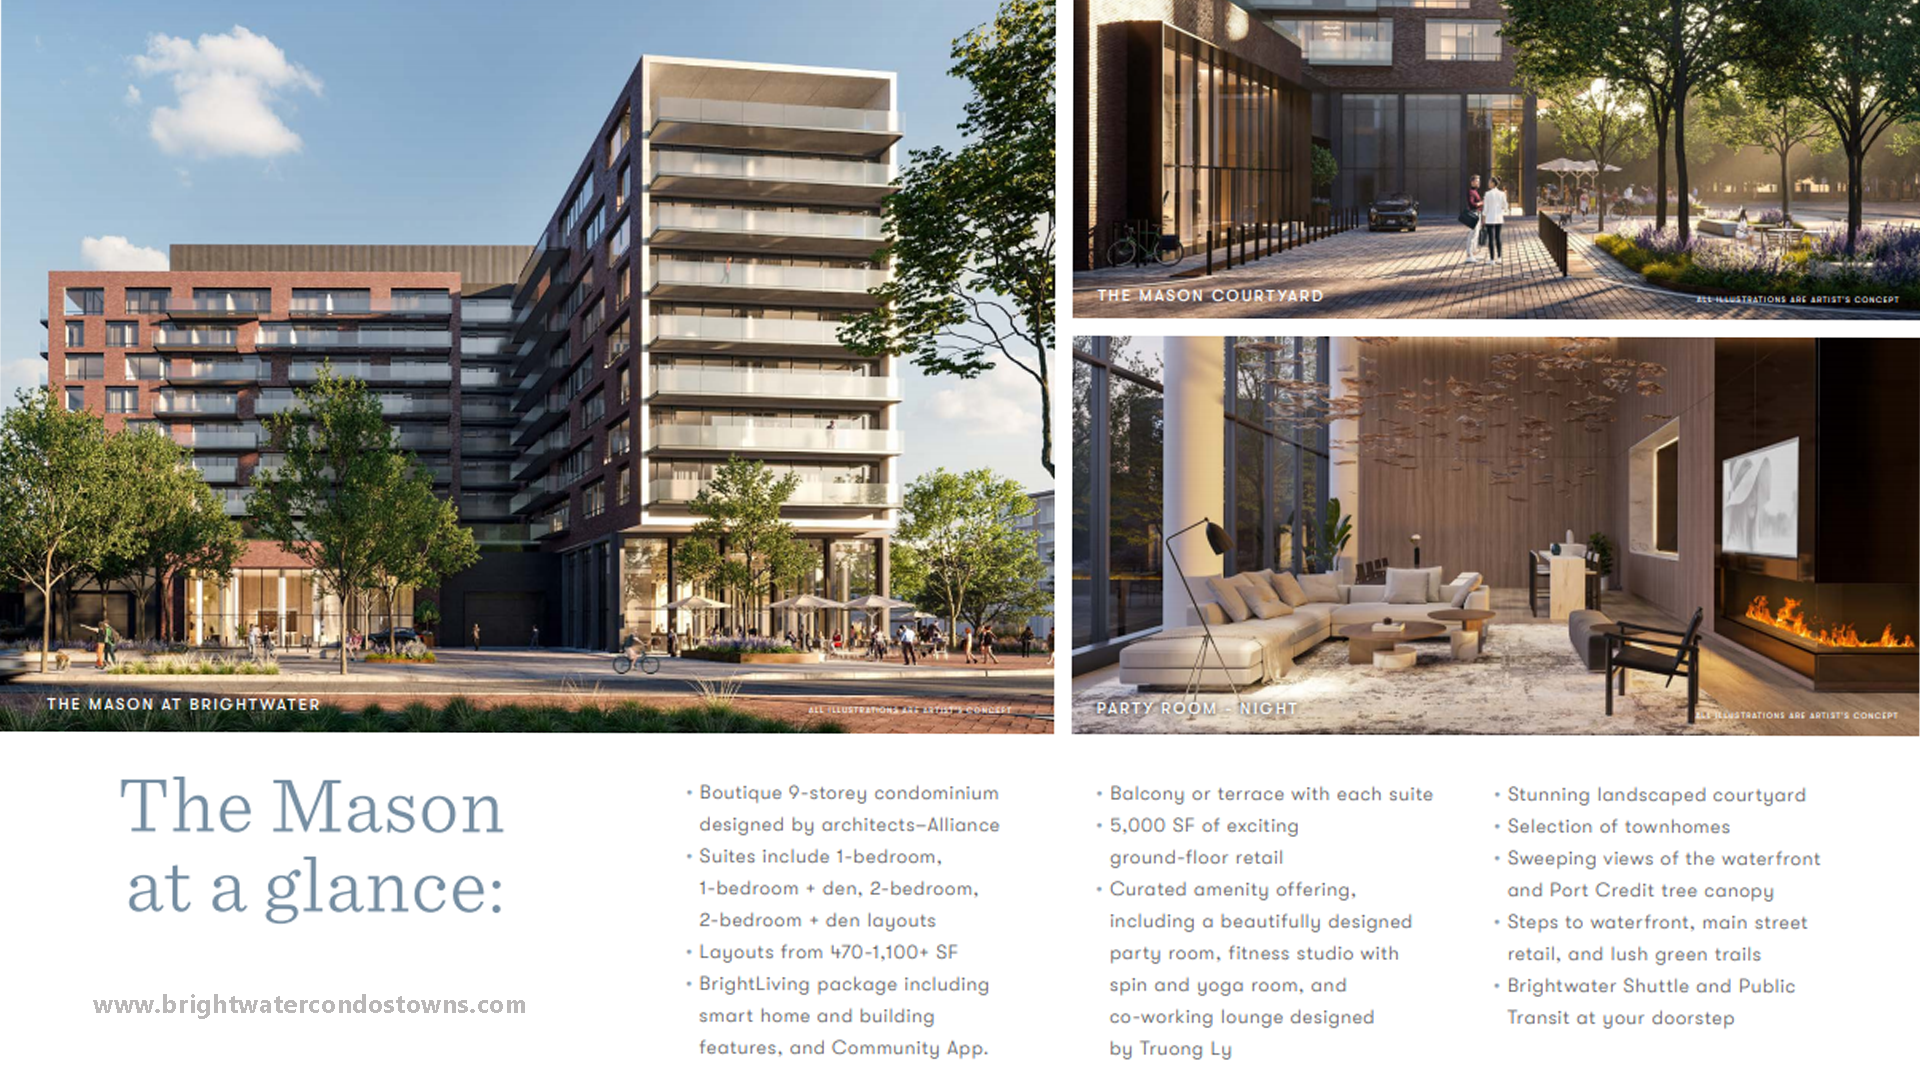 The Mason at a glance rendering ii